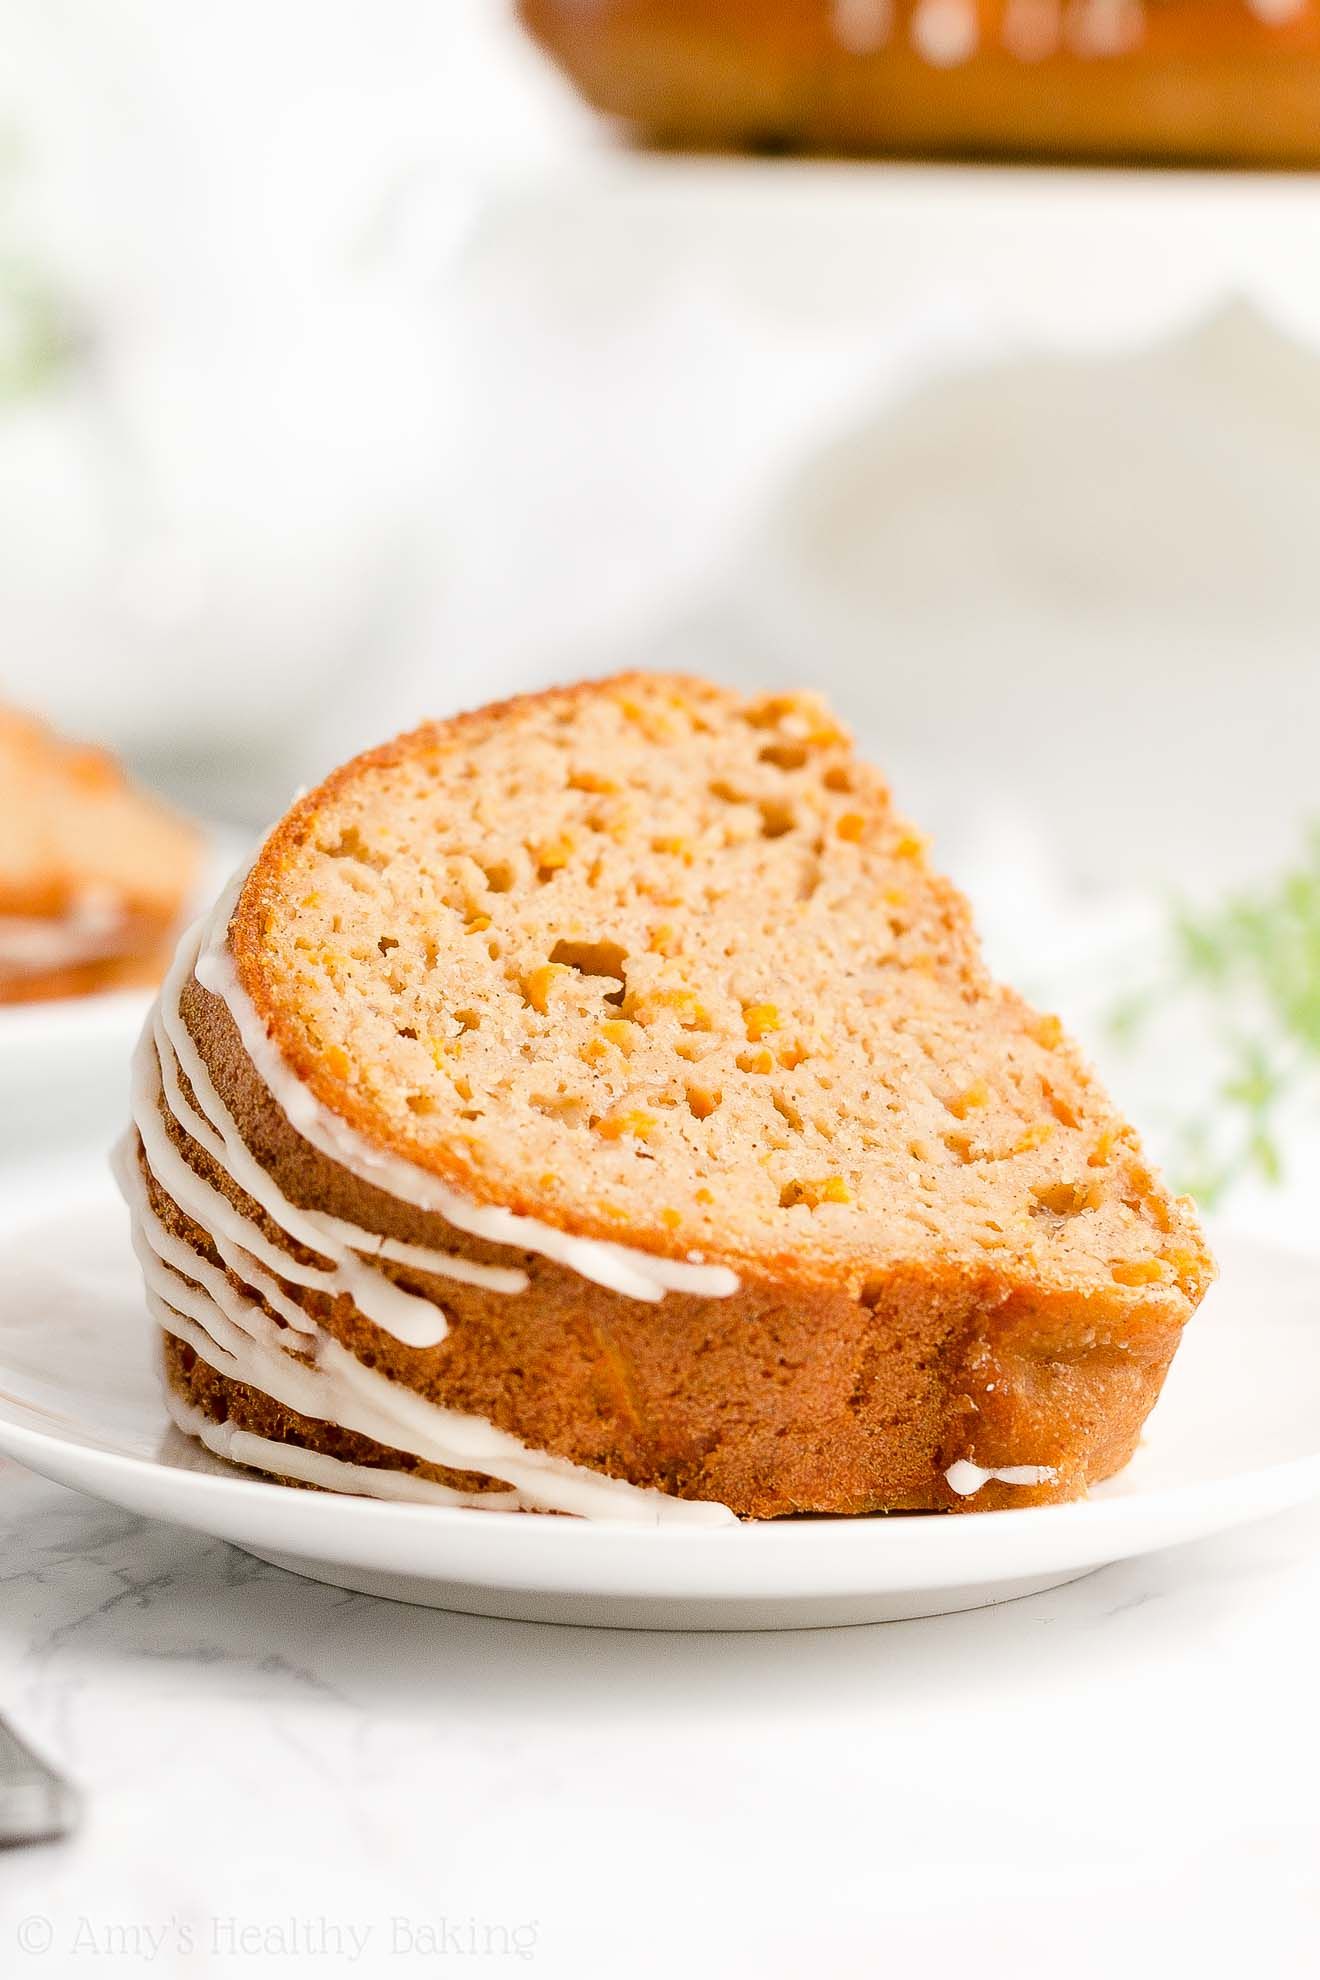 Best Easy Healthy Clean Eating Low Fat Sugar Free Moist Carrot Bundt Cake